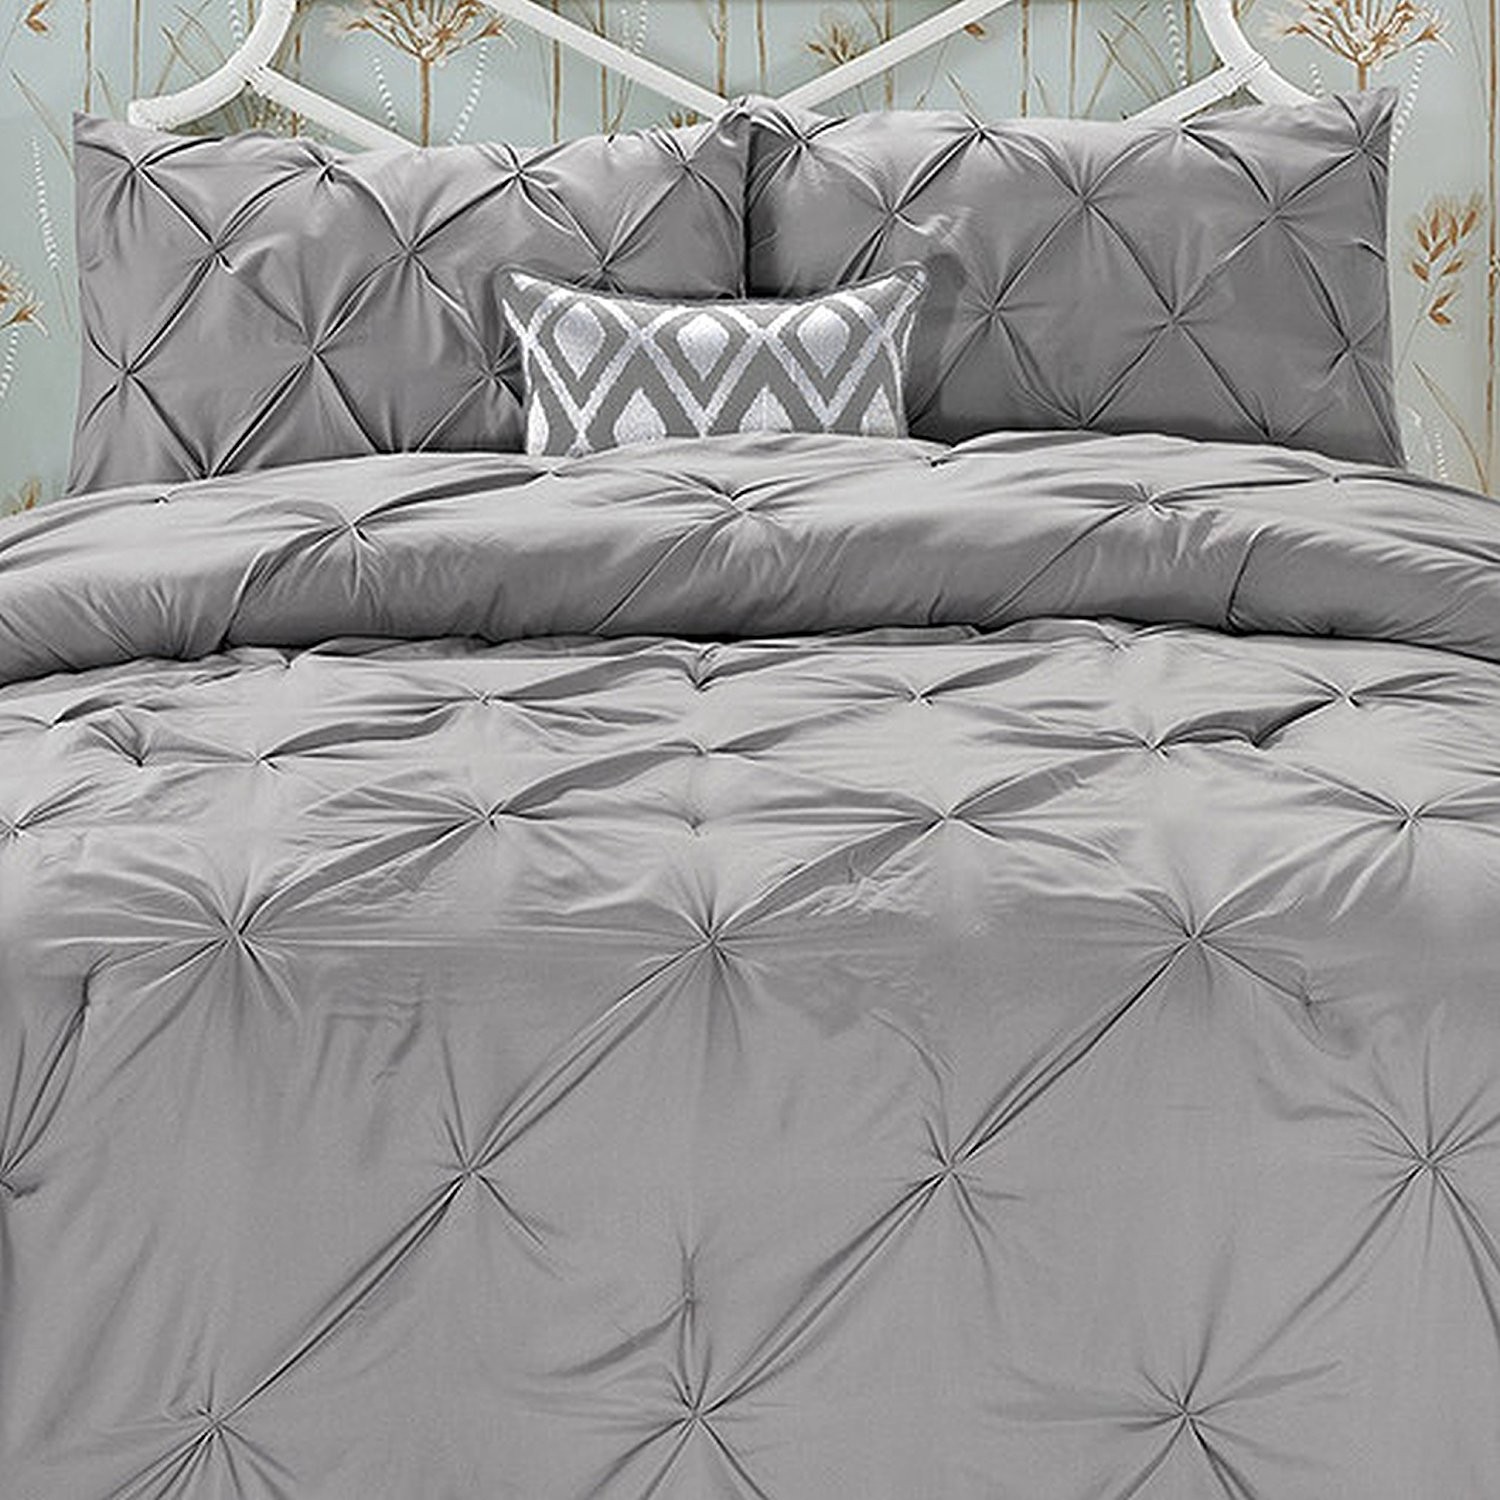 Elegant Comfort Wrinkle Resistant - All Season Luxury Silky Soft Pintuck 3-Piece Comforter Set - King Grey